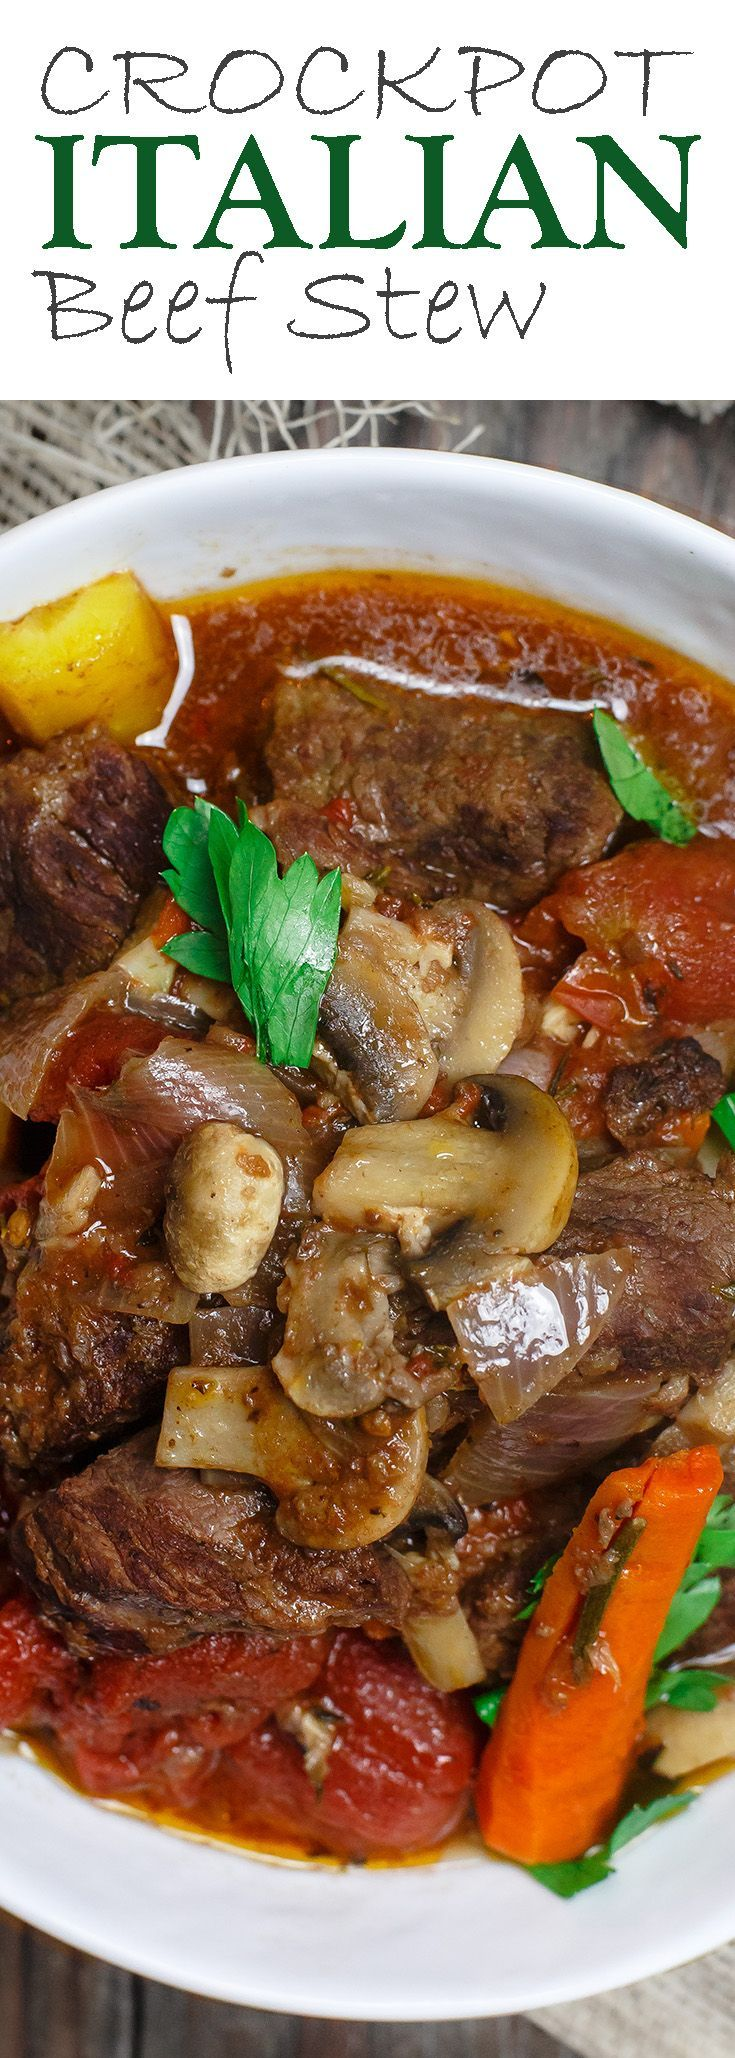 25 best ideas about beef stews on pinterest slowcooker for Crock pot fish stew